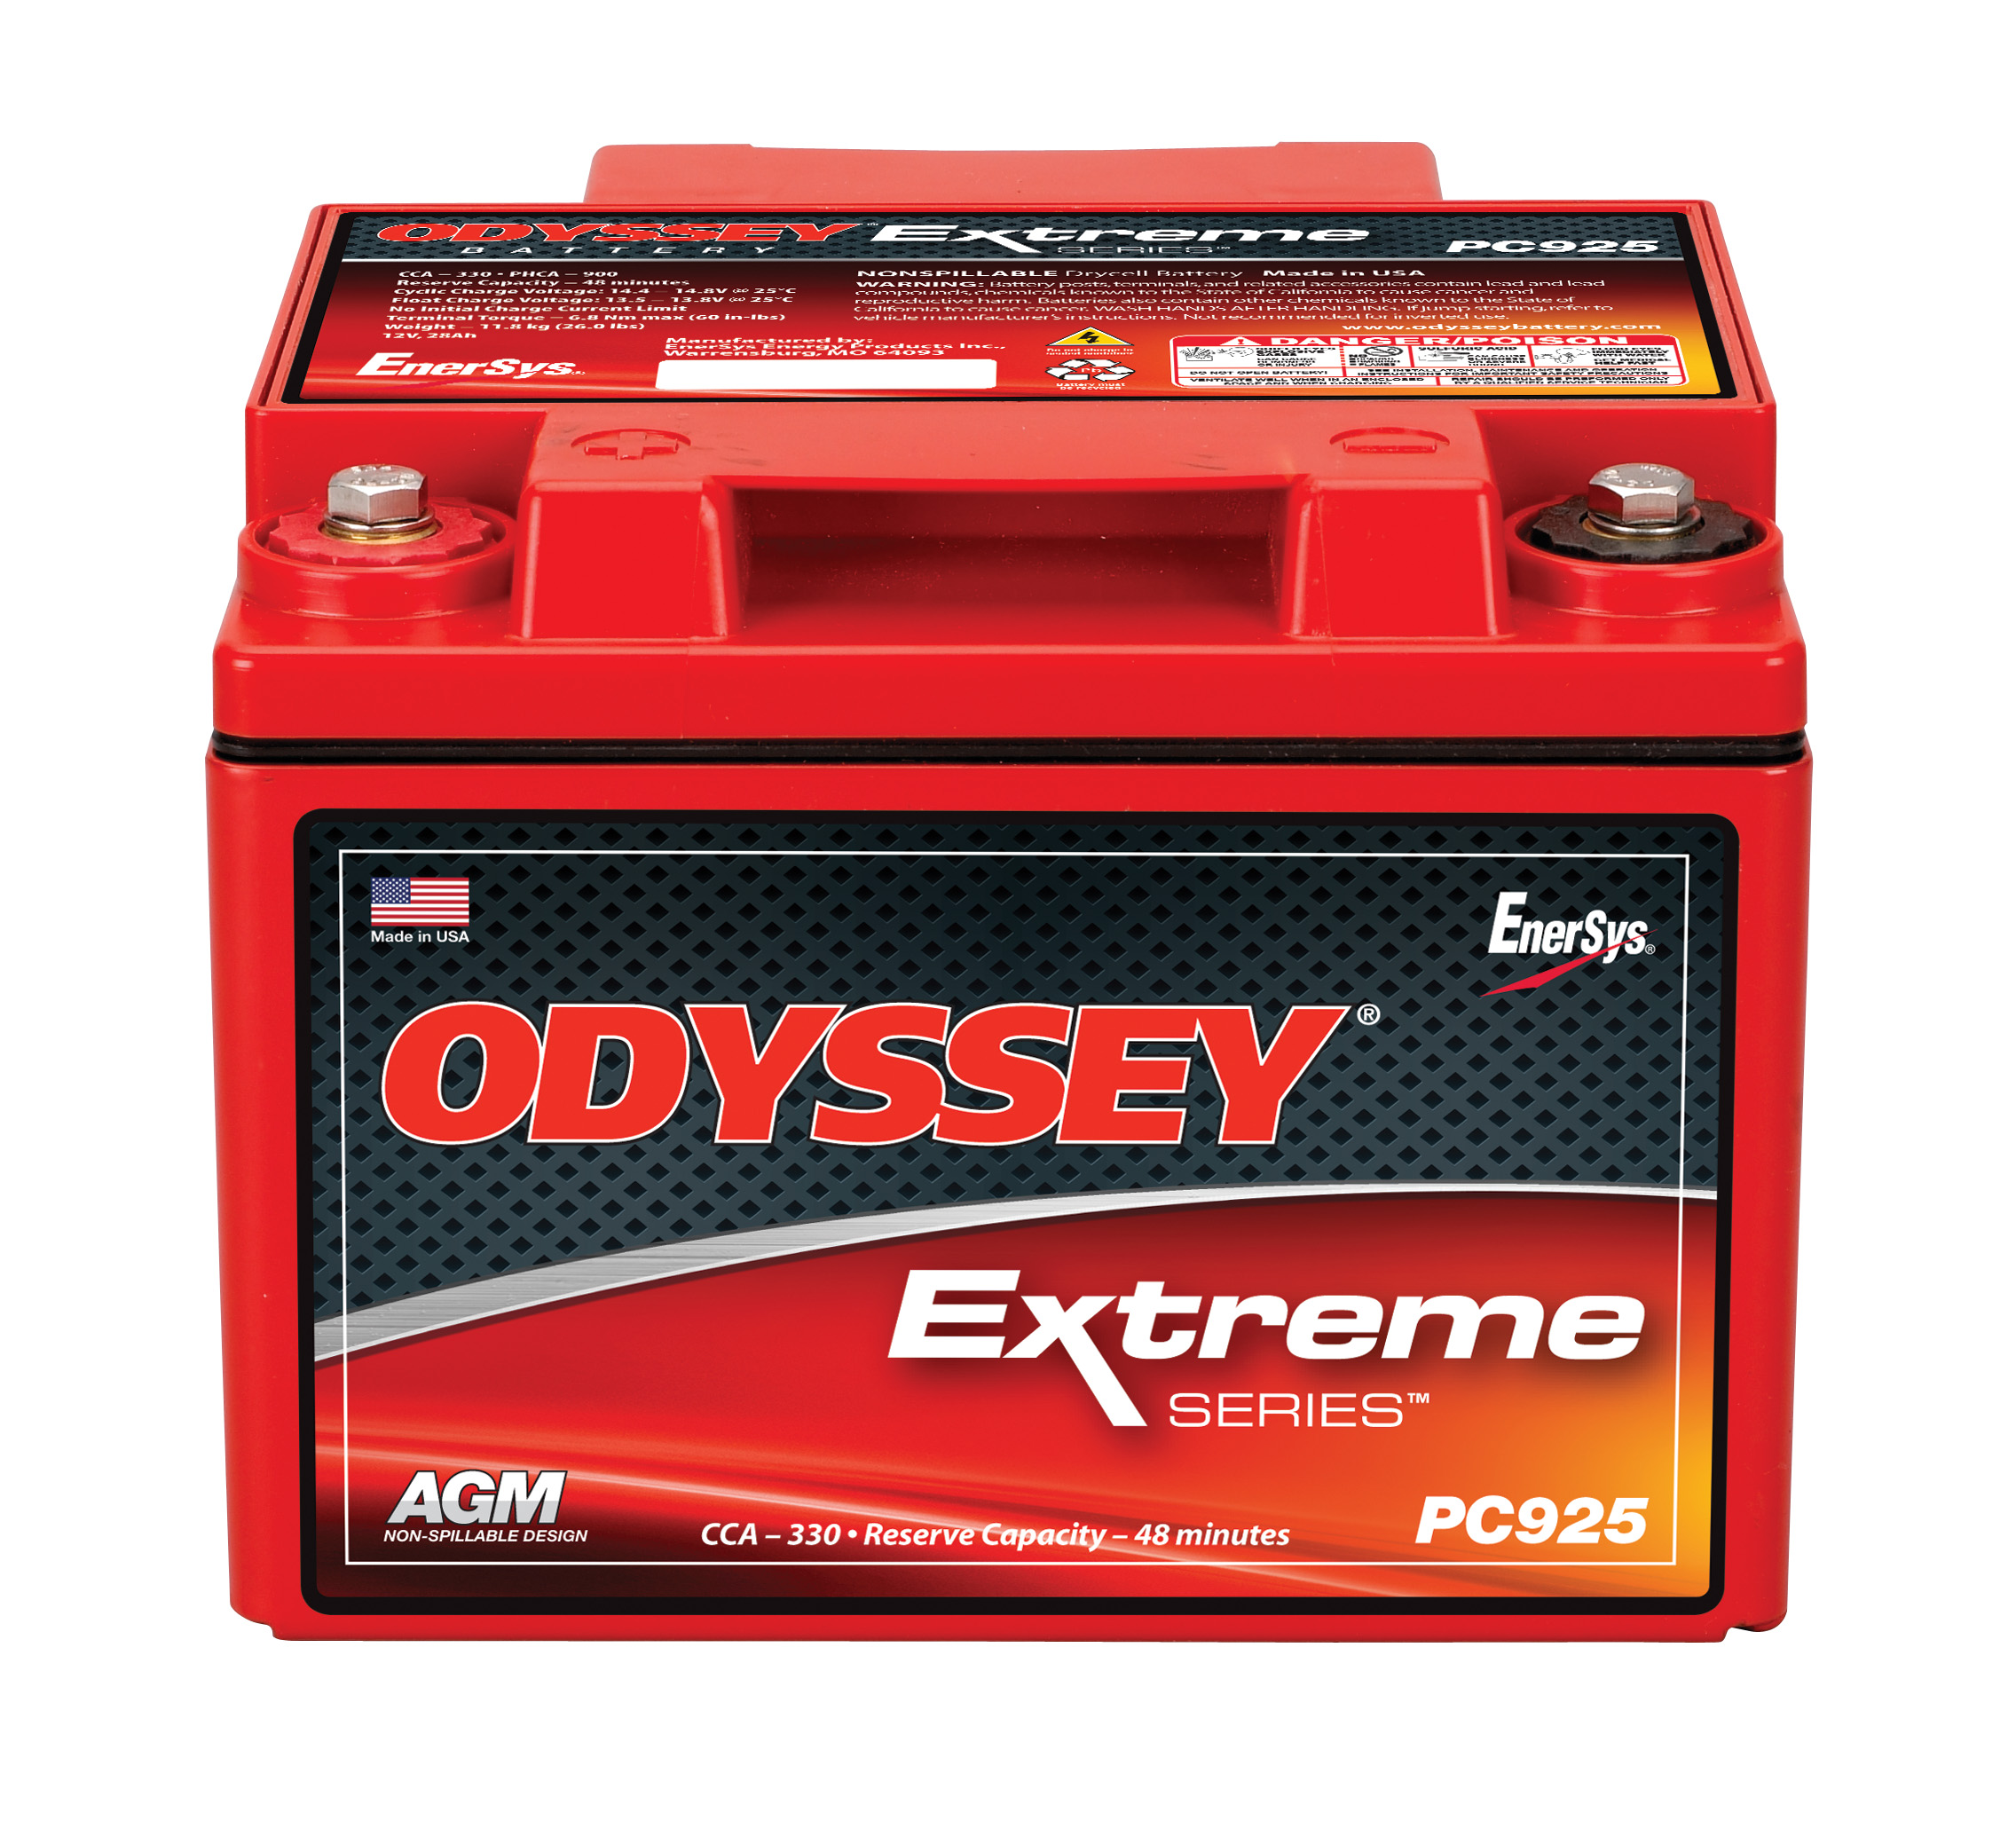 Odyssey Extreme PC925 with Metal Jacket Product Picture (straight).jpg